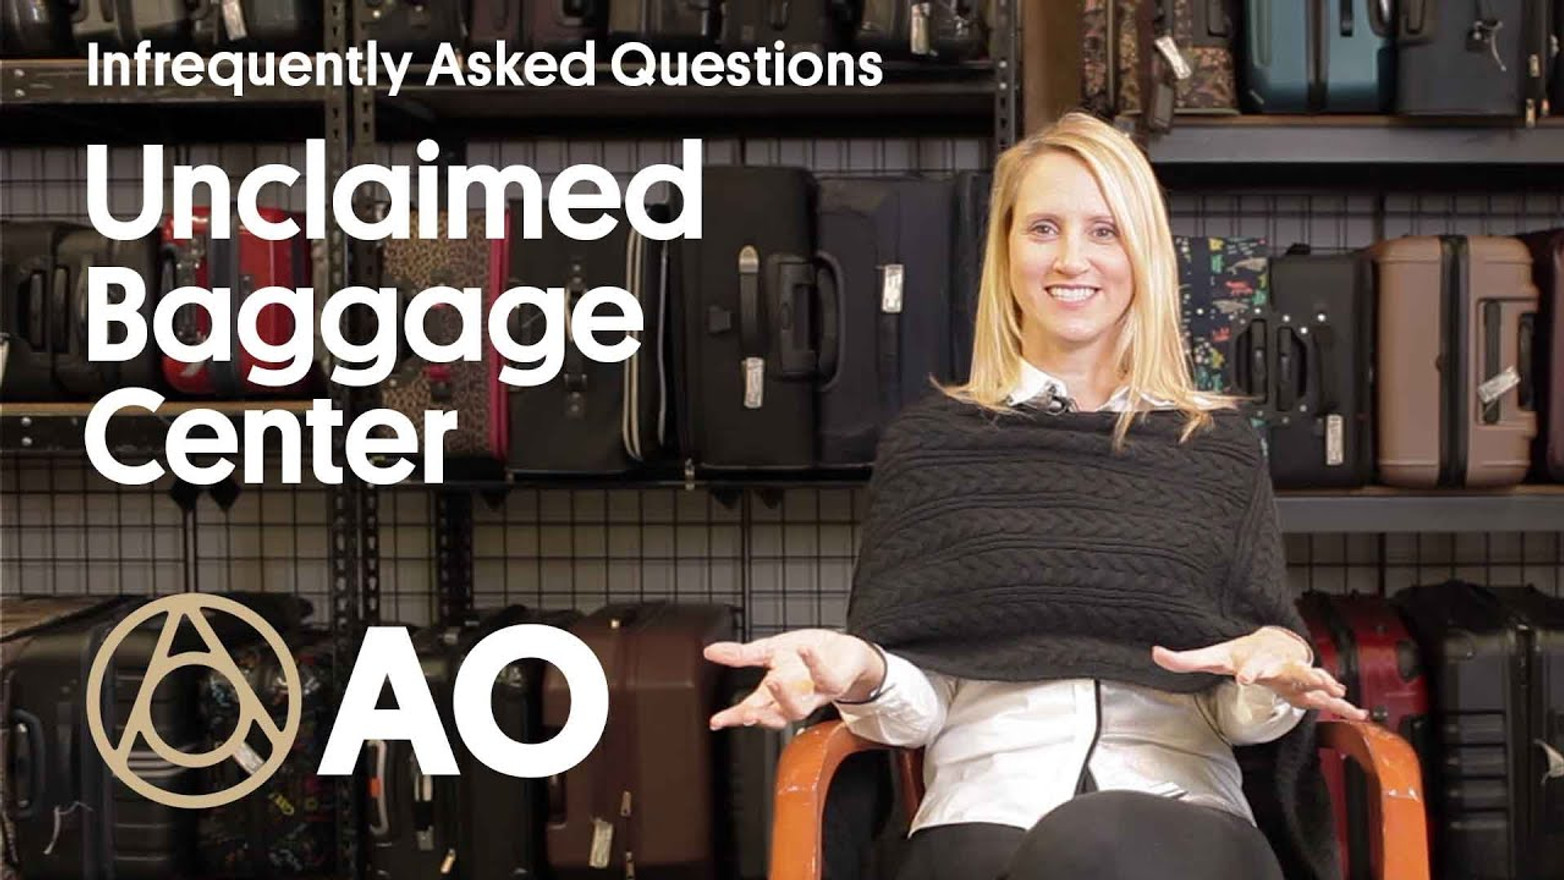 IFAQ - Unclaimed Baggage Center